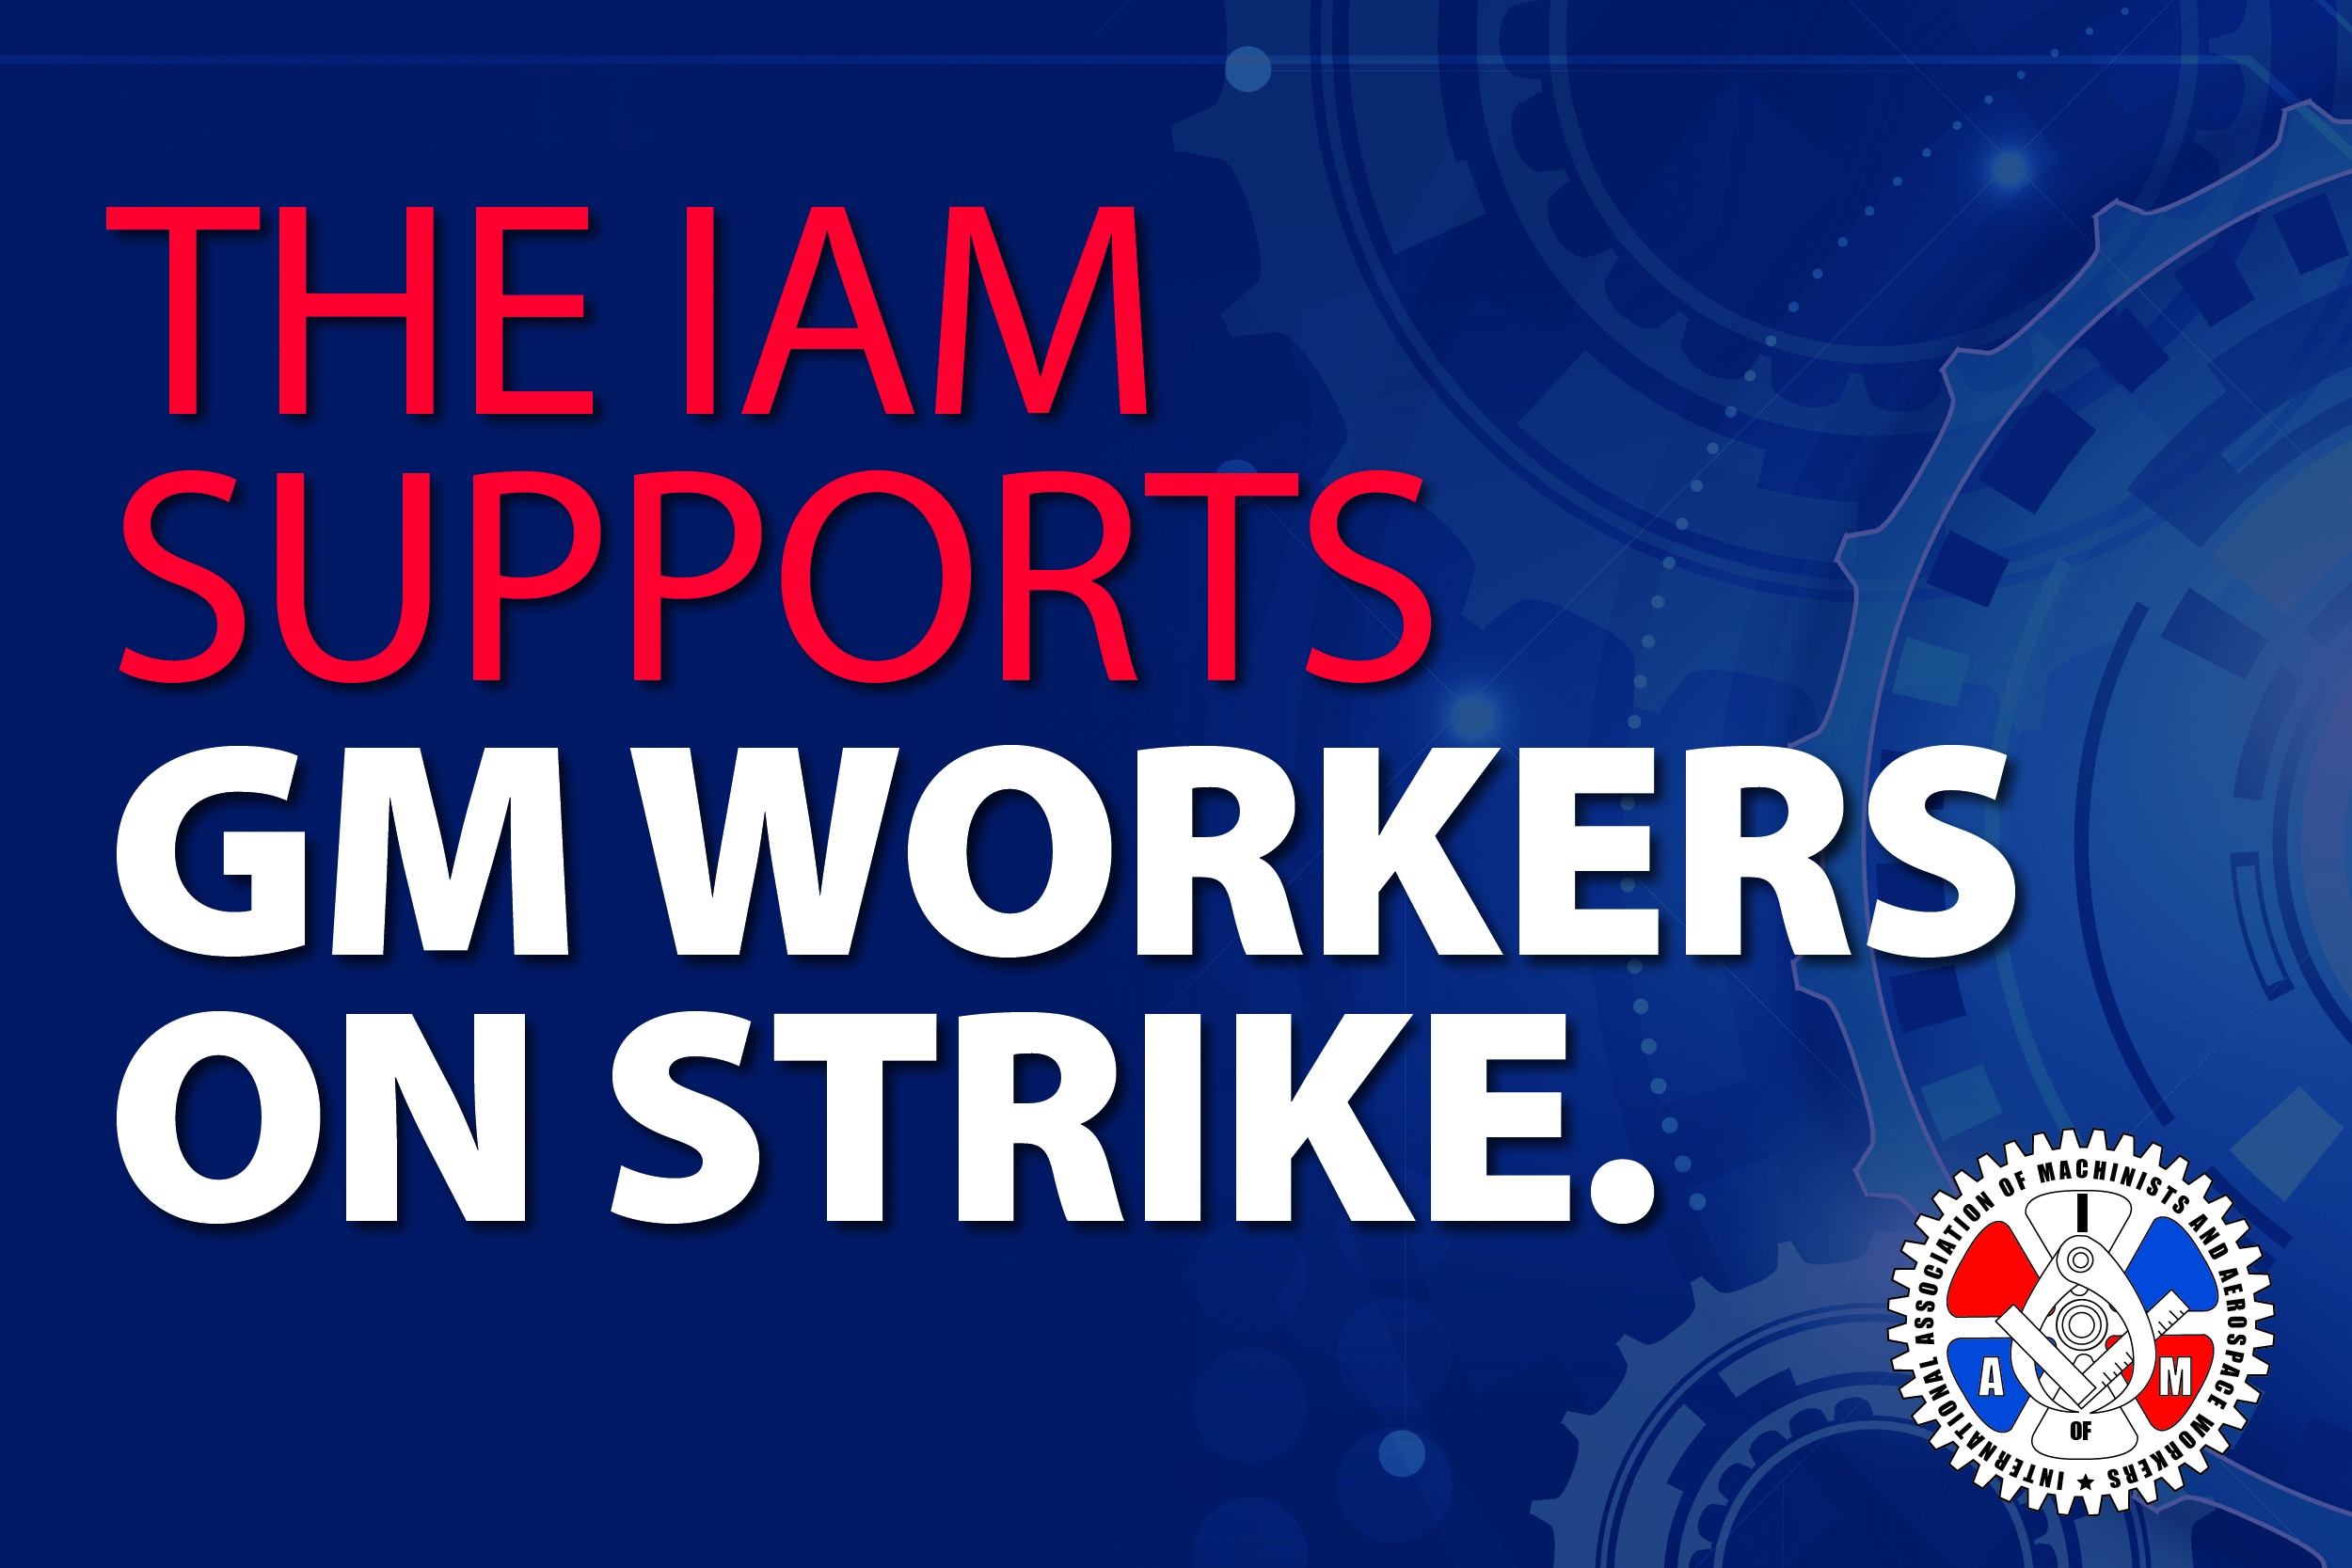 Machinists Support UAW Members on Strike at GM Facilities